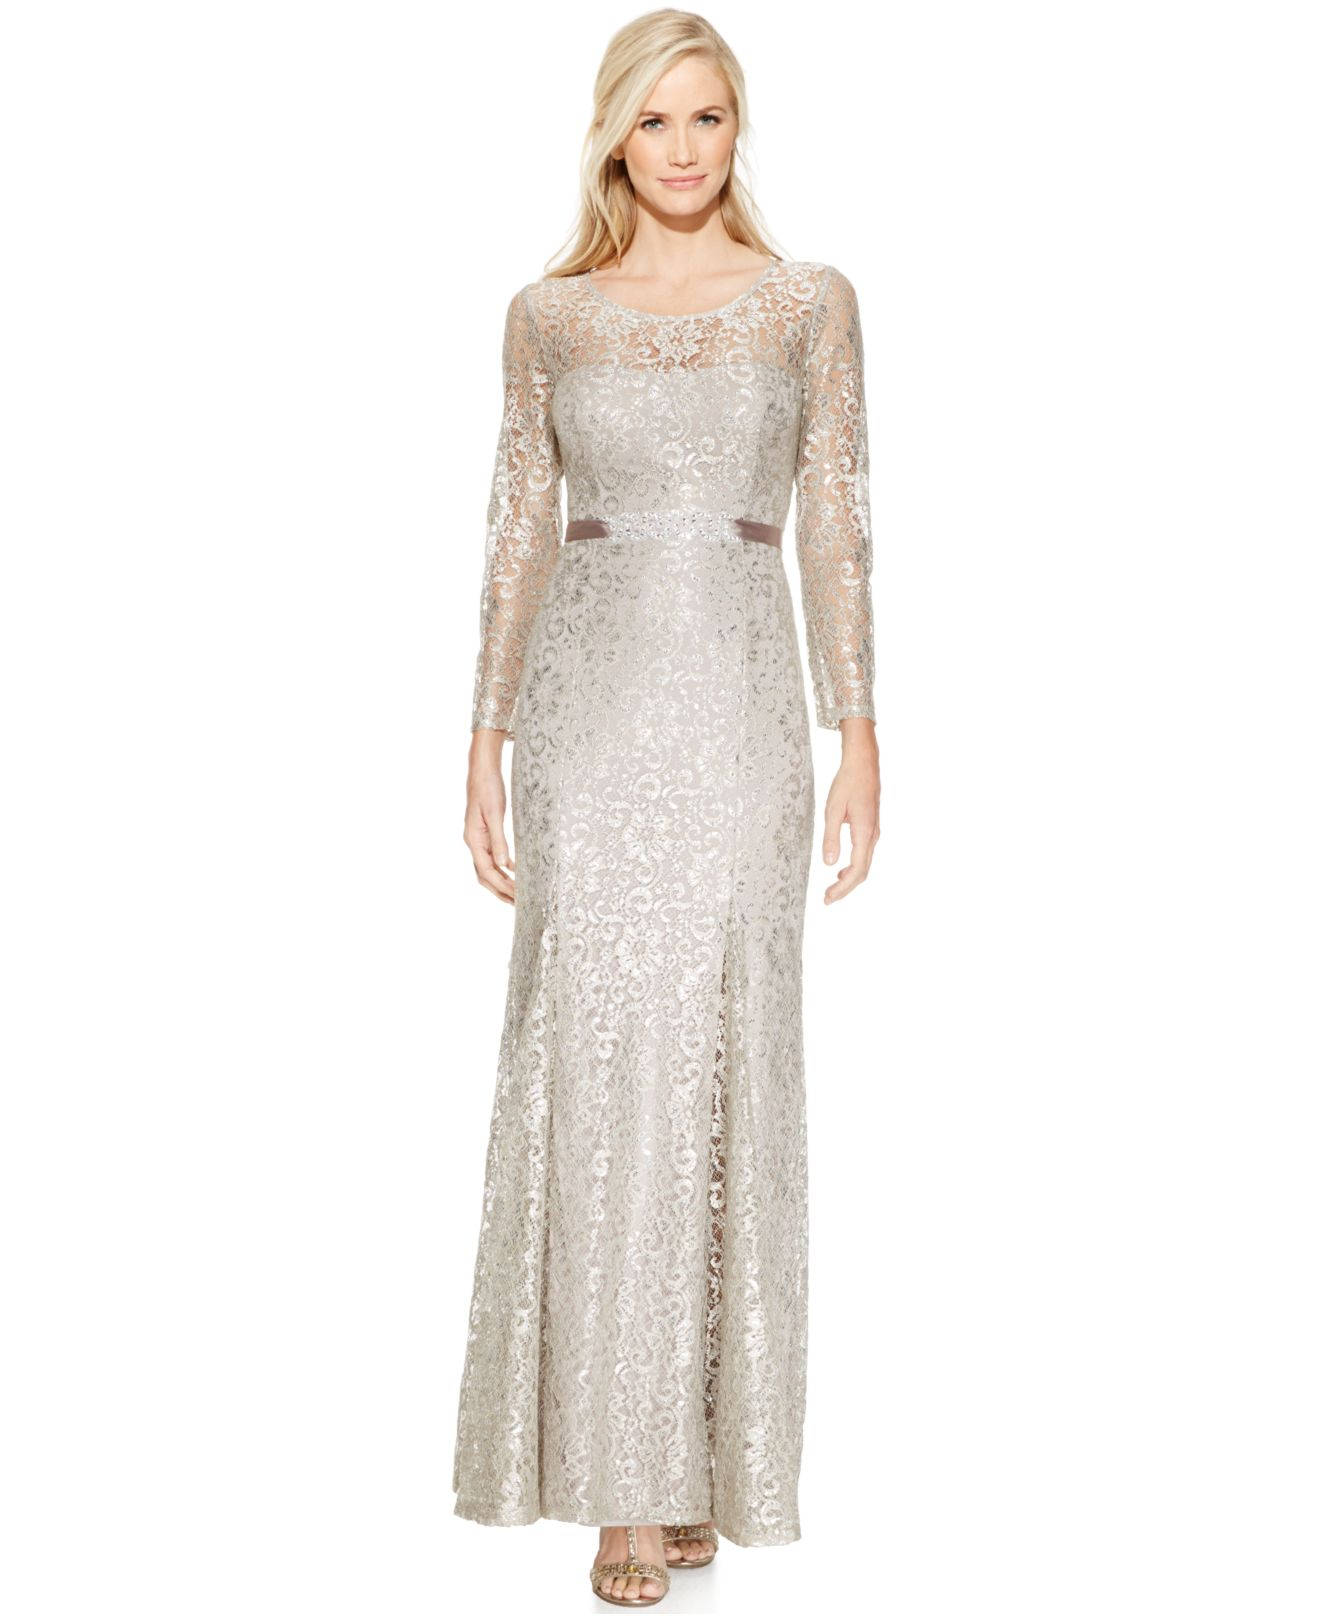 Lyst - Betsy & Adam Long-sleeve Open-back Lace Gown in Metallic